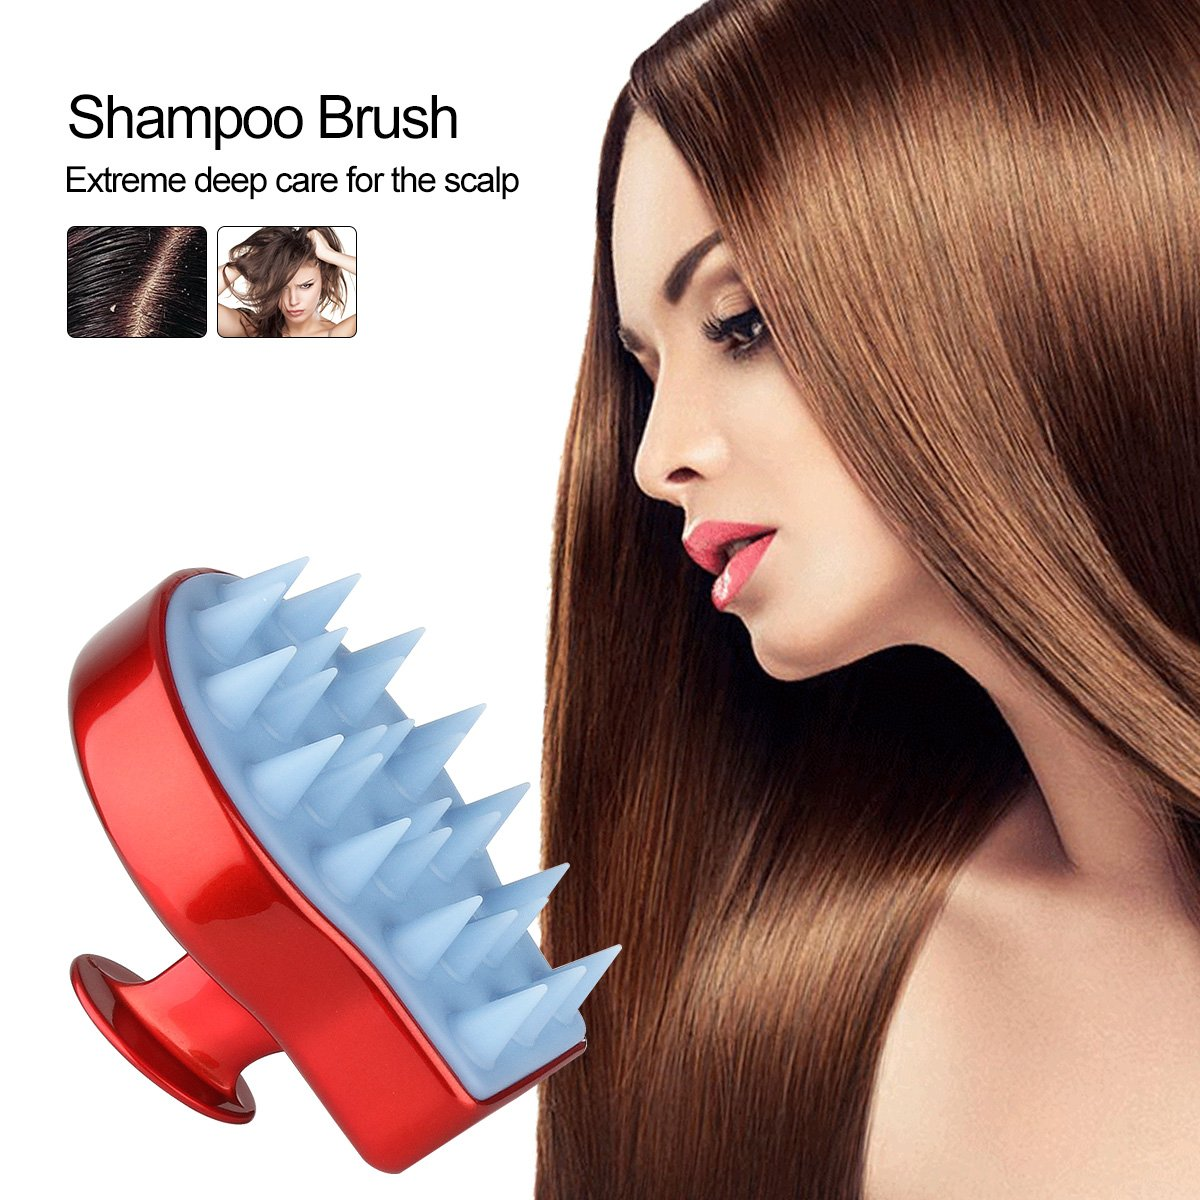 Shampoo Scalp Massage Brush Head Massager Shower Body Massaging Electrical Wall Outlet Wiring Newhairstylesformen2014com Cleaning Hair Comb For Men Women Kids Health Personal Care